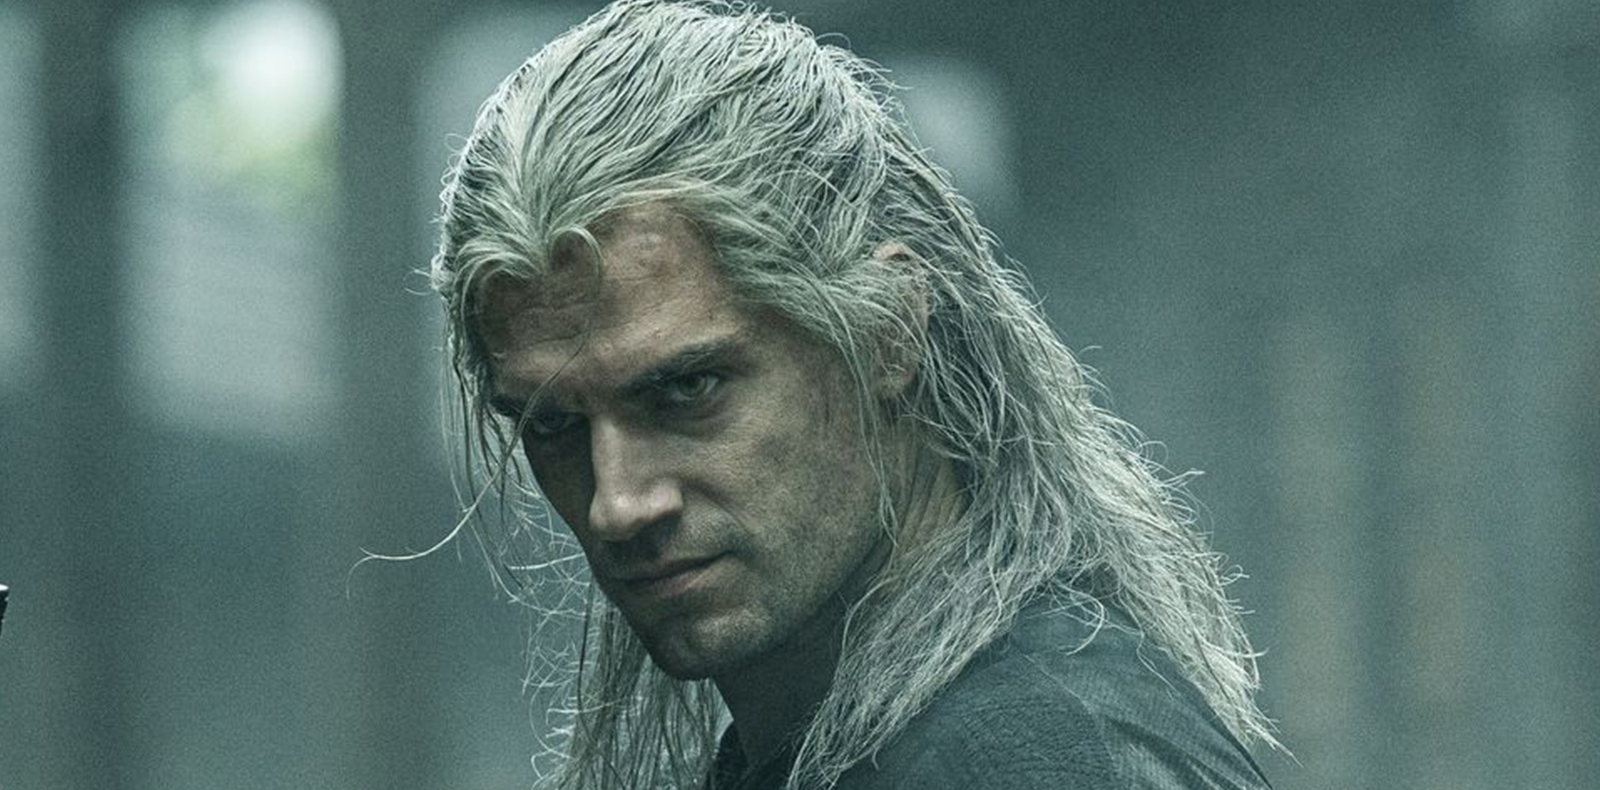 Who Is Henry Cavill Hero Of The Witcher